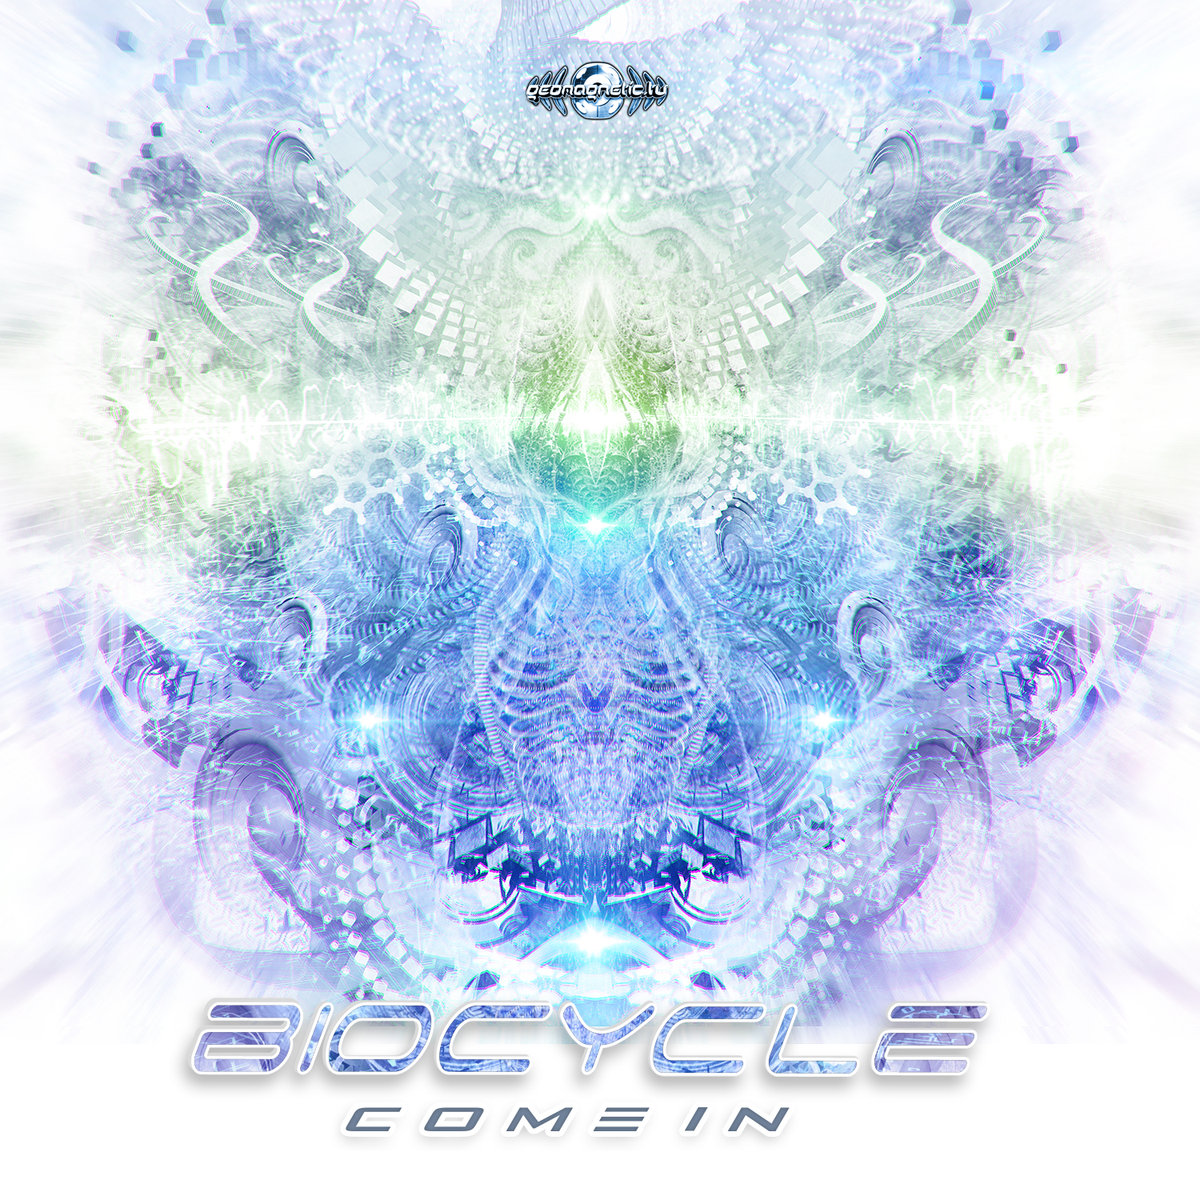 Biocycle - Synthetic Burst @ 'Come In' album (electronic, geomagnetic)